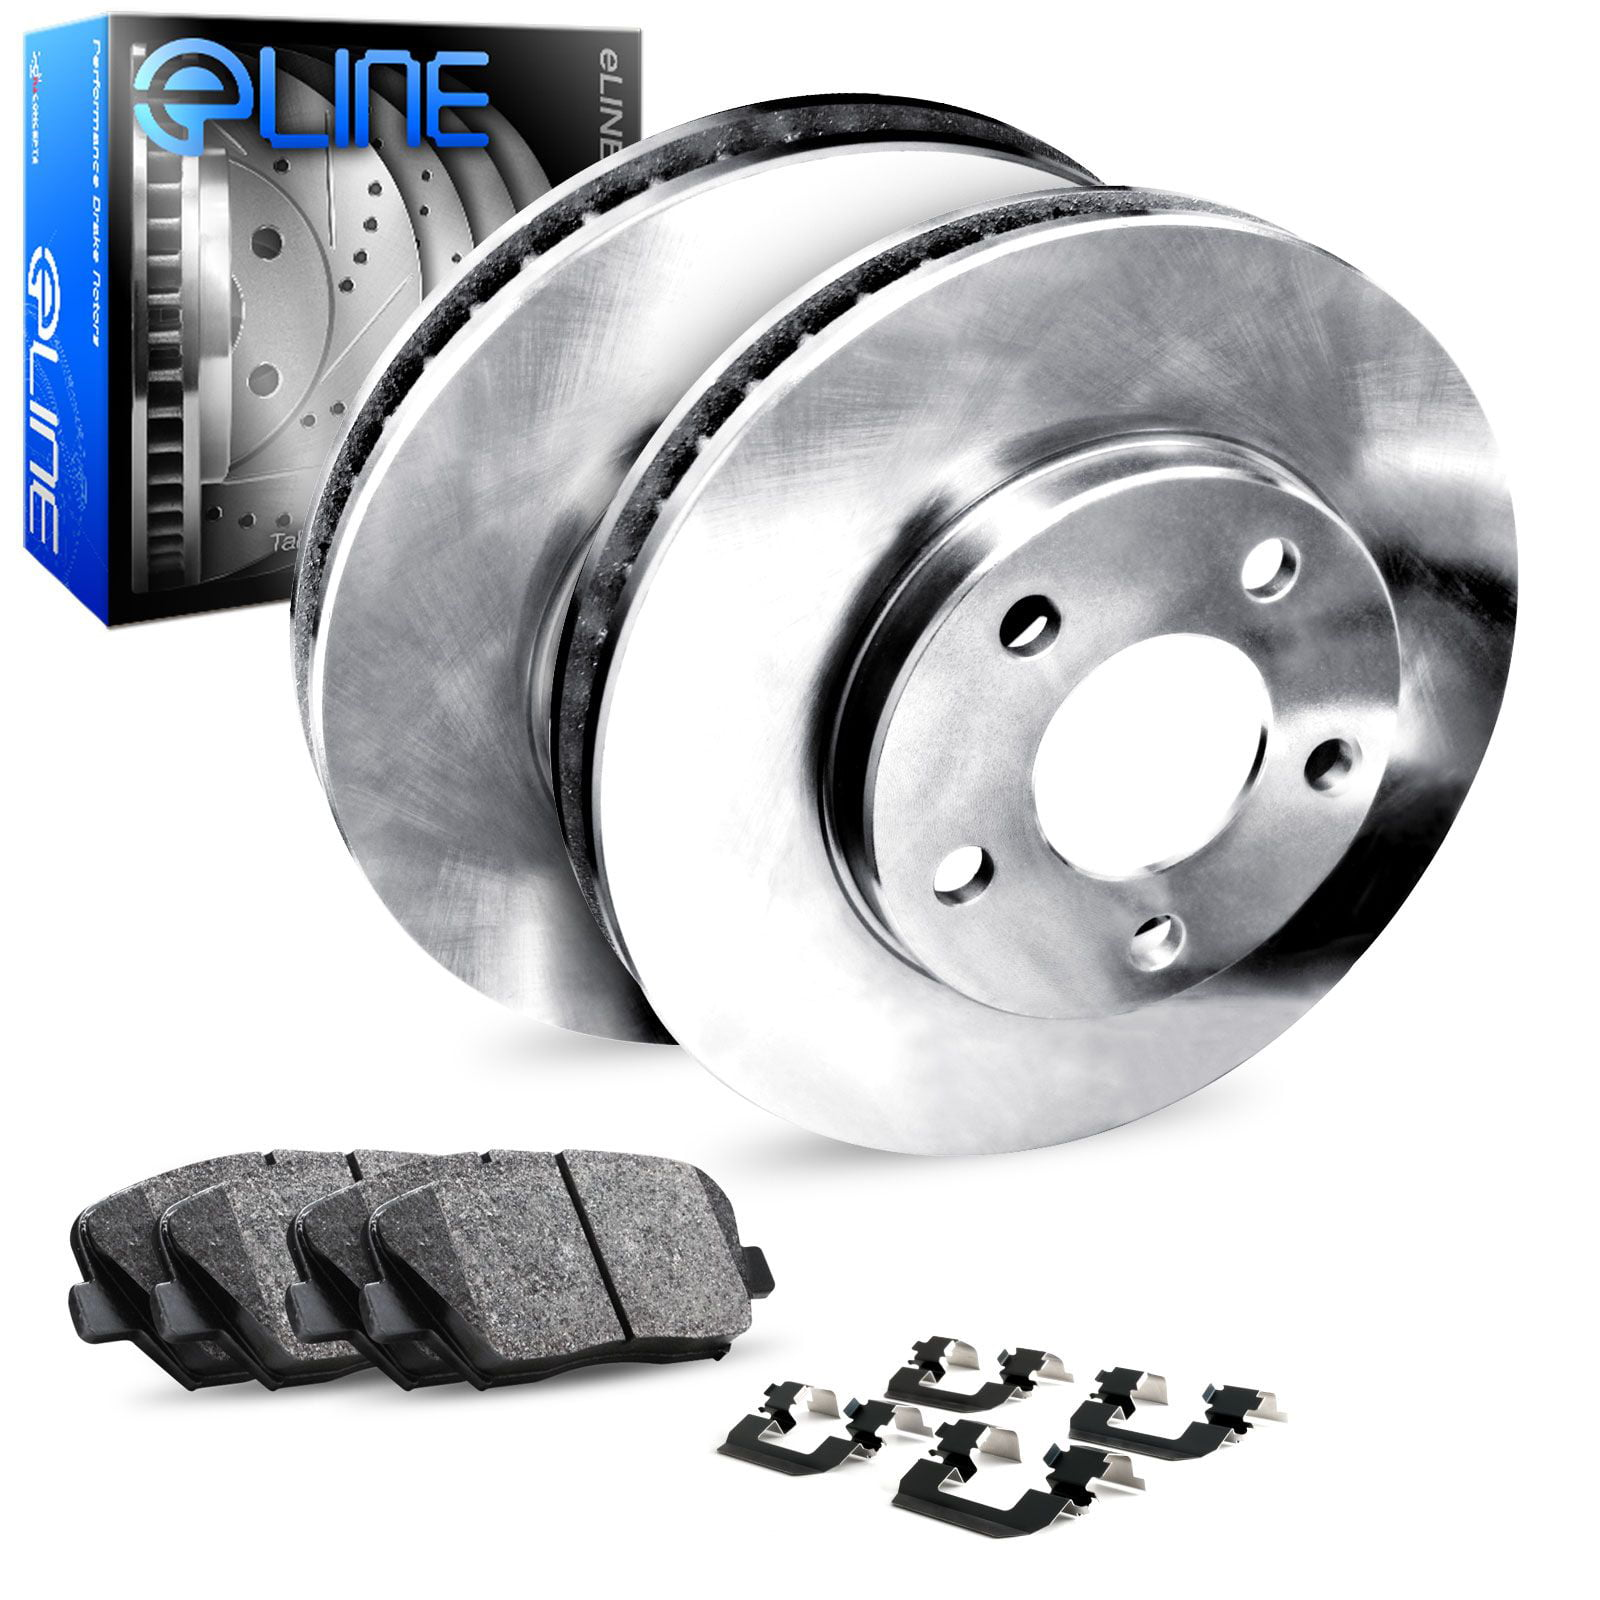 2009 2010 2011 2012 For Toyota Venza Rear Disc Brake Rotors and Ceramic Pads